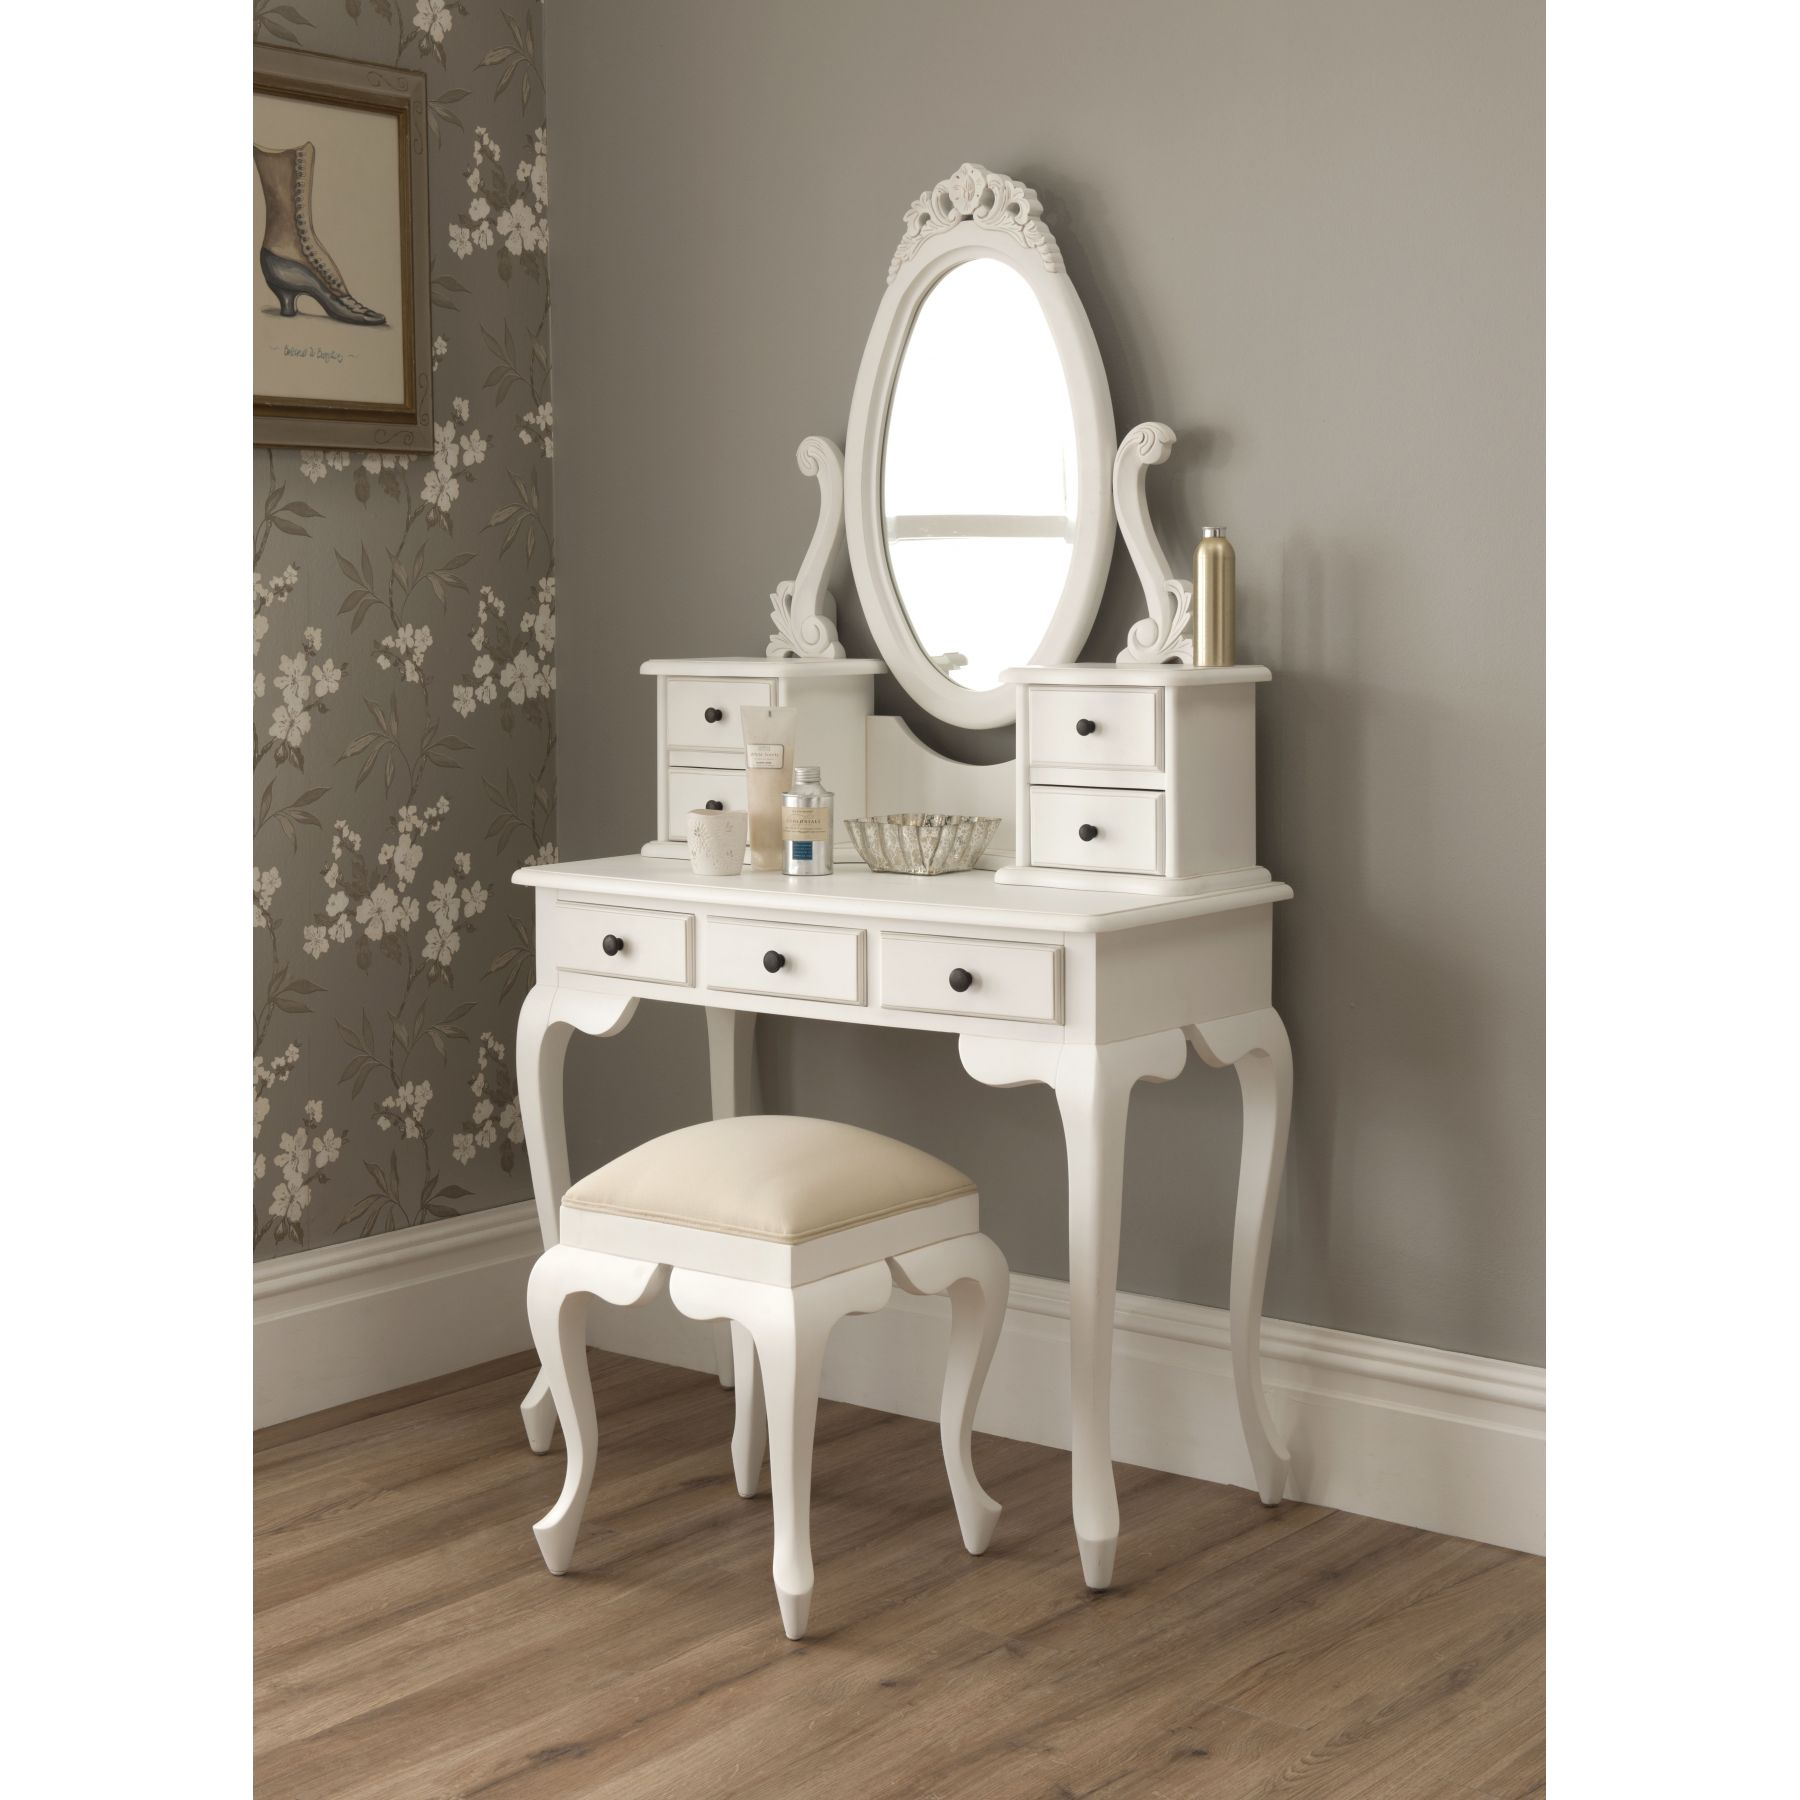 Mirrored Vanity Set for Elegant Bedroom Furniture Design: Mirror Glass Vanity | Discount Bedroom Vanity | Mirrored Vanity Set